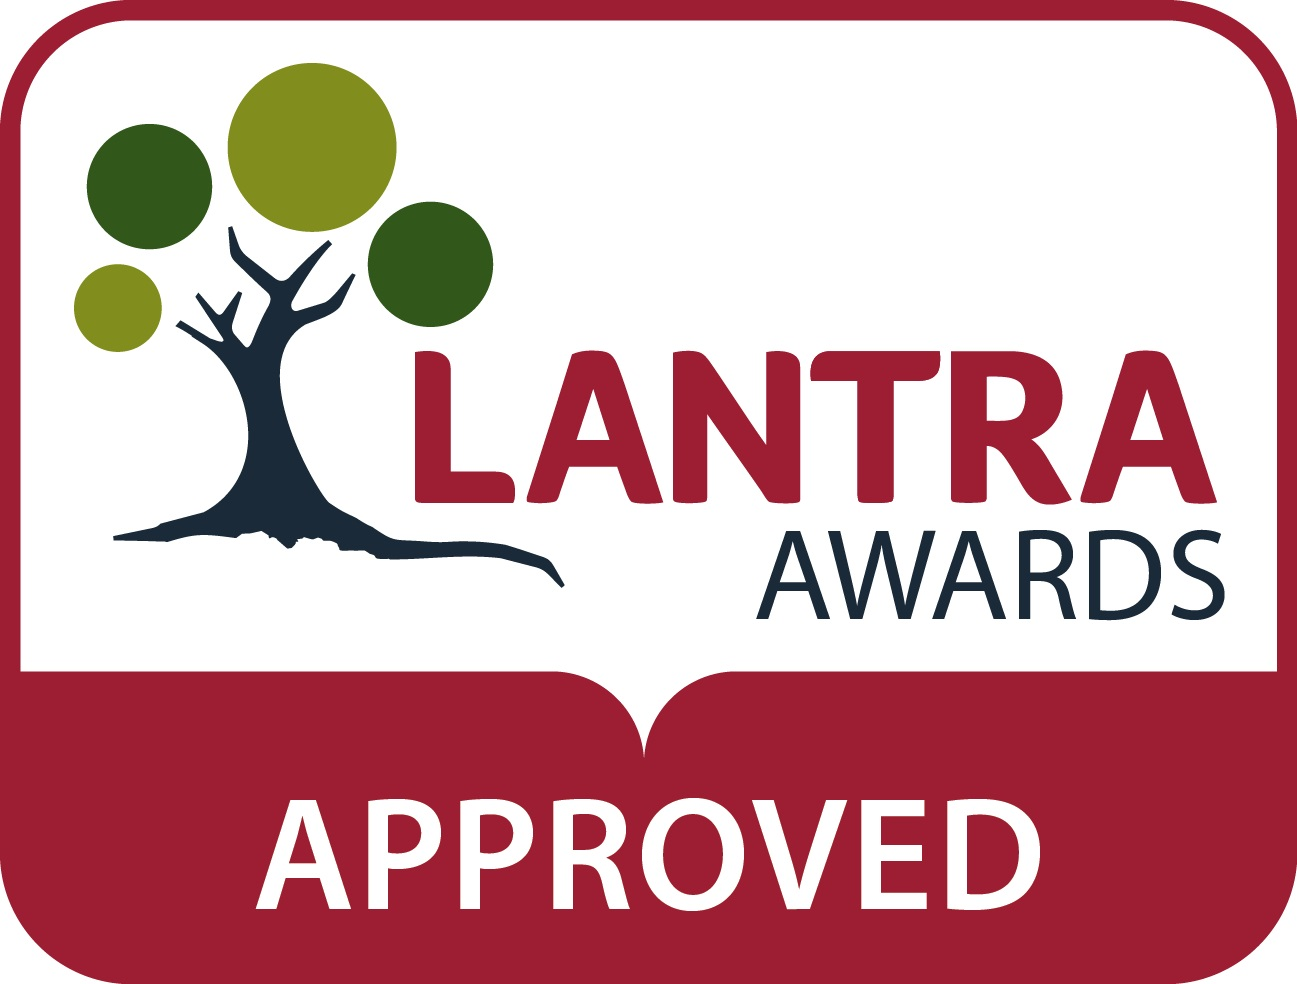 Lantra Awards logo APPROVED